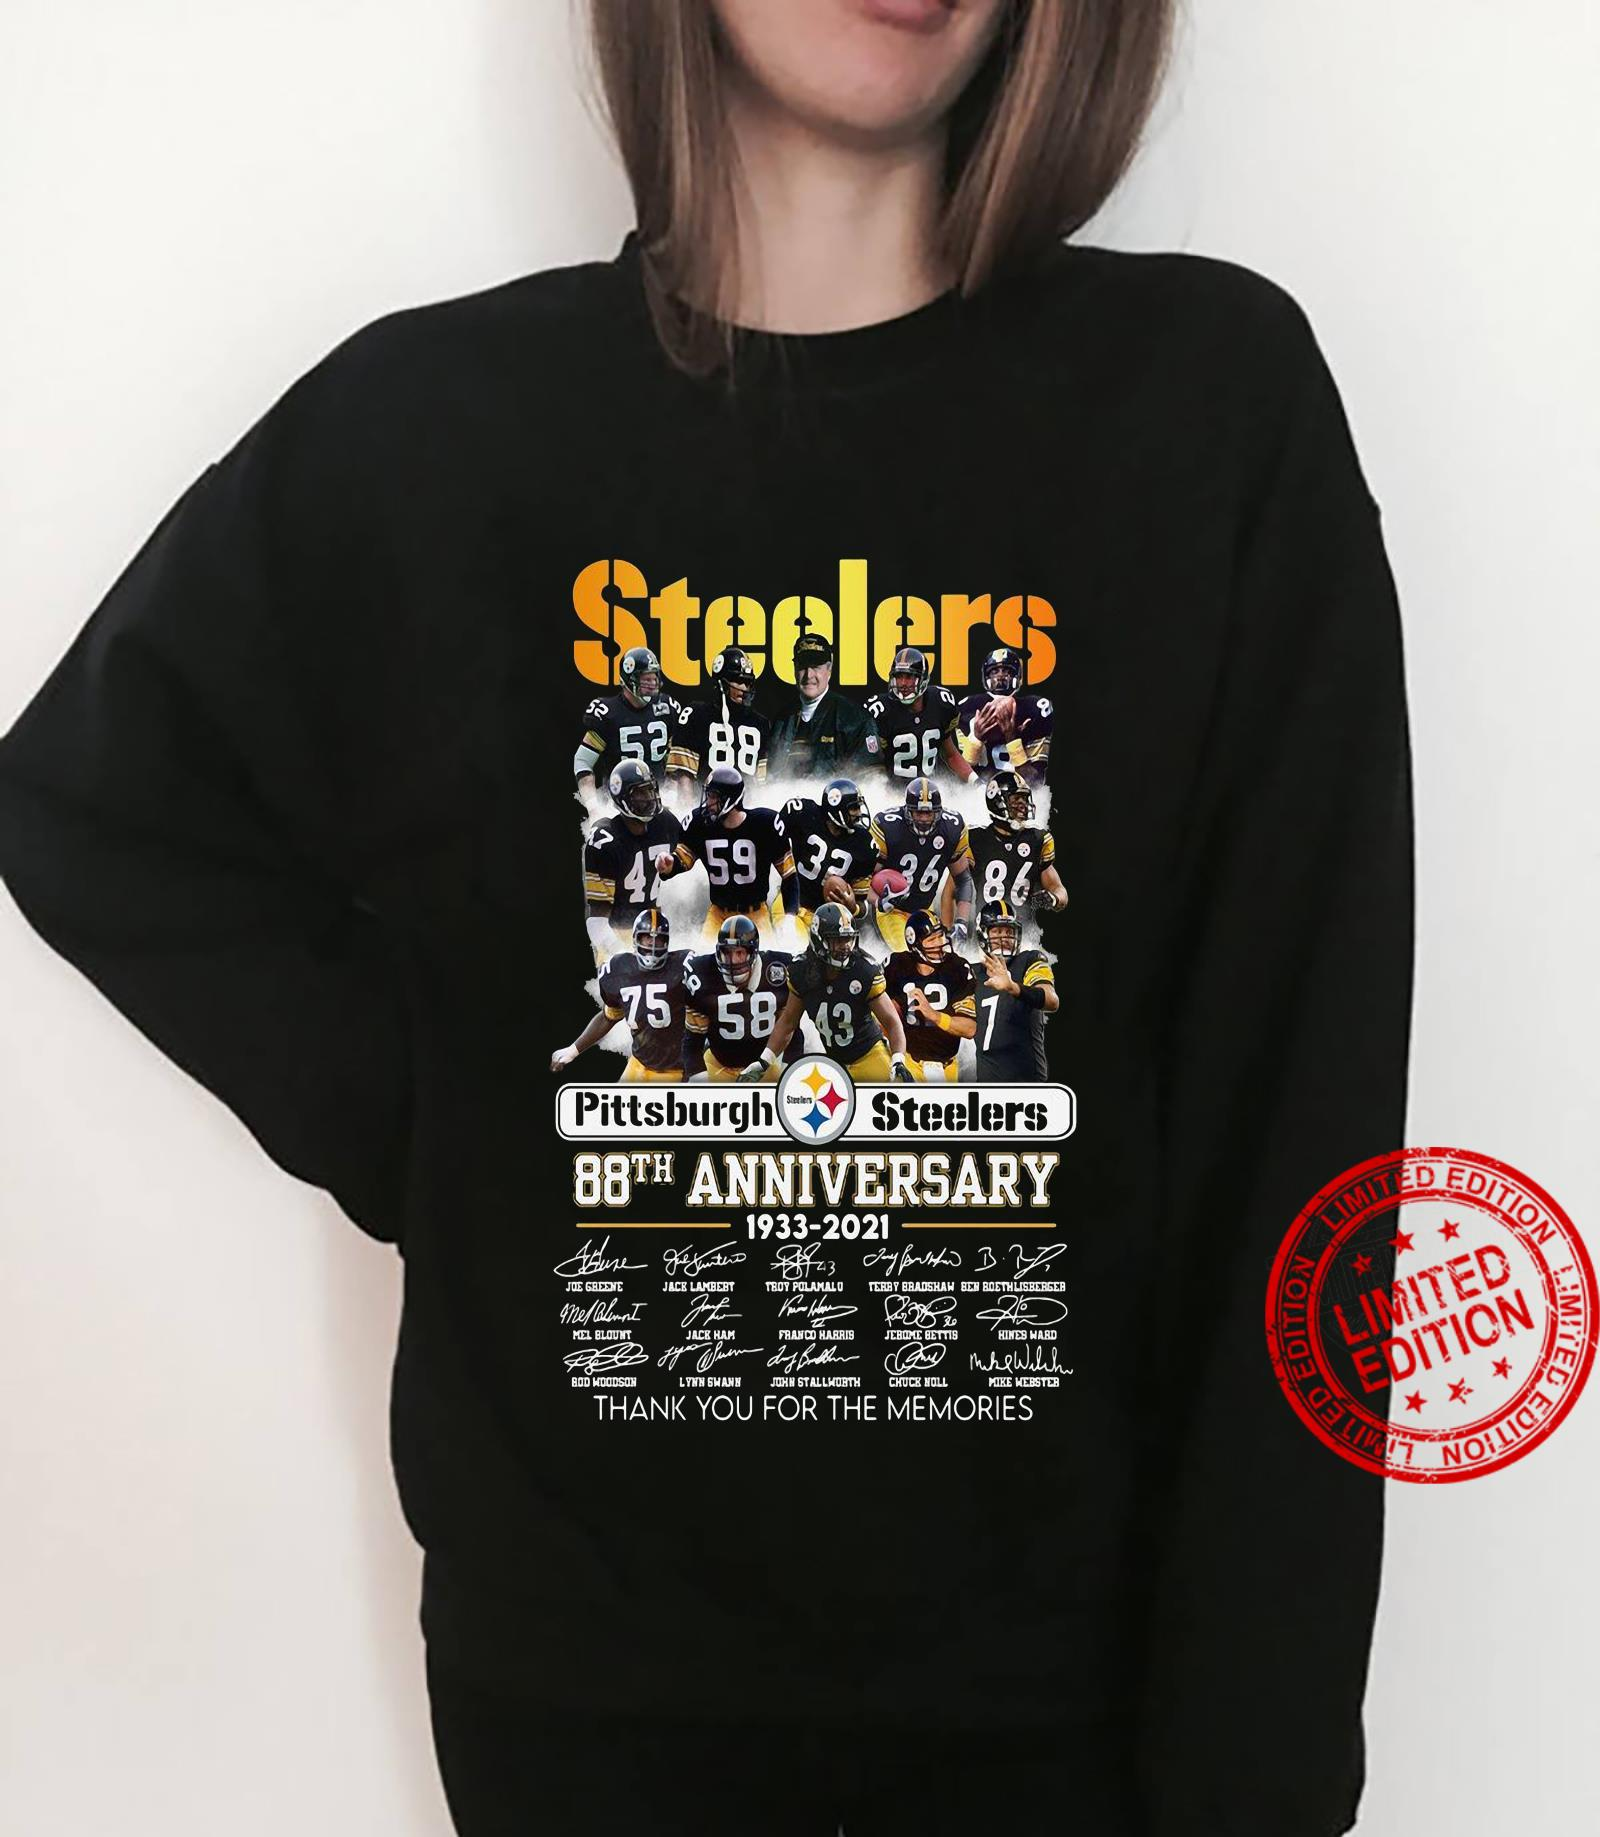 Steelers pittsburgh steelers 88th anniversary 1933 2021 thank you for the memories shirt sweater